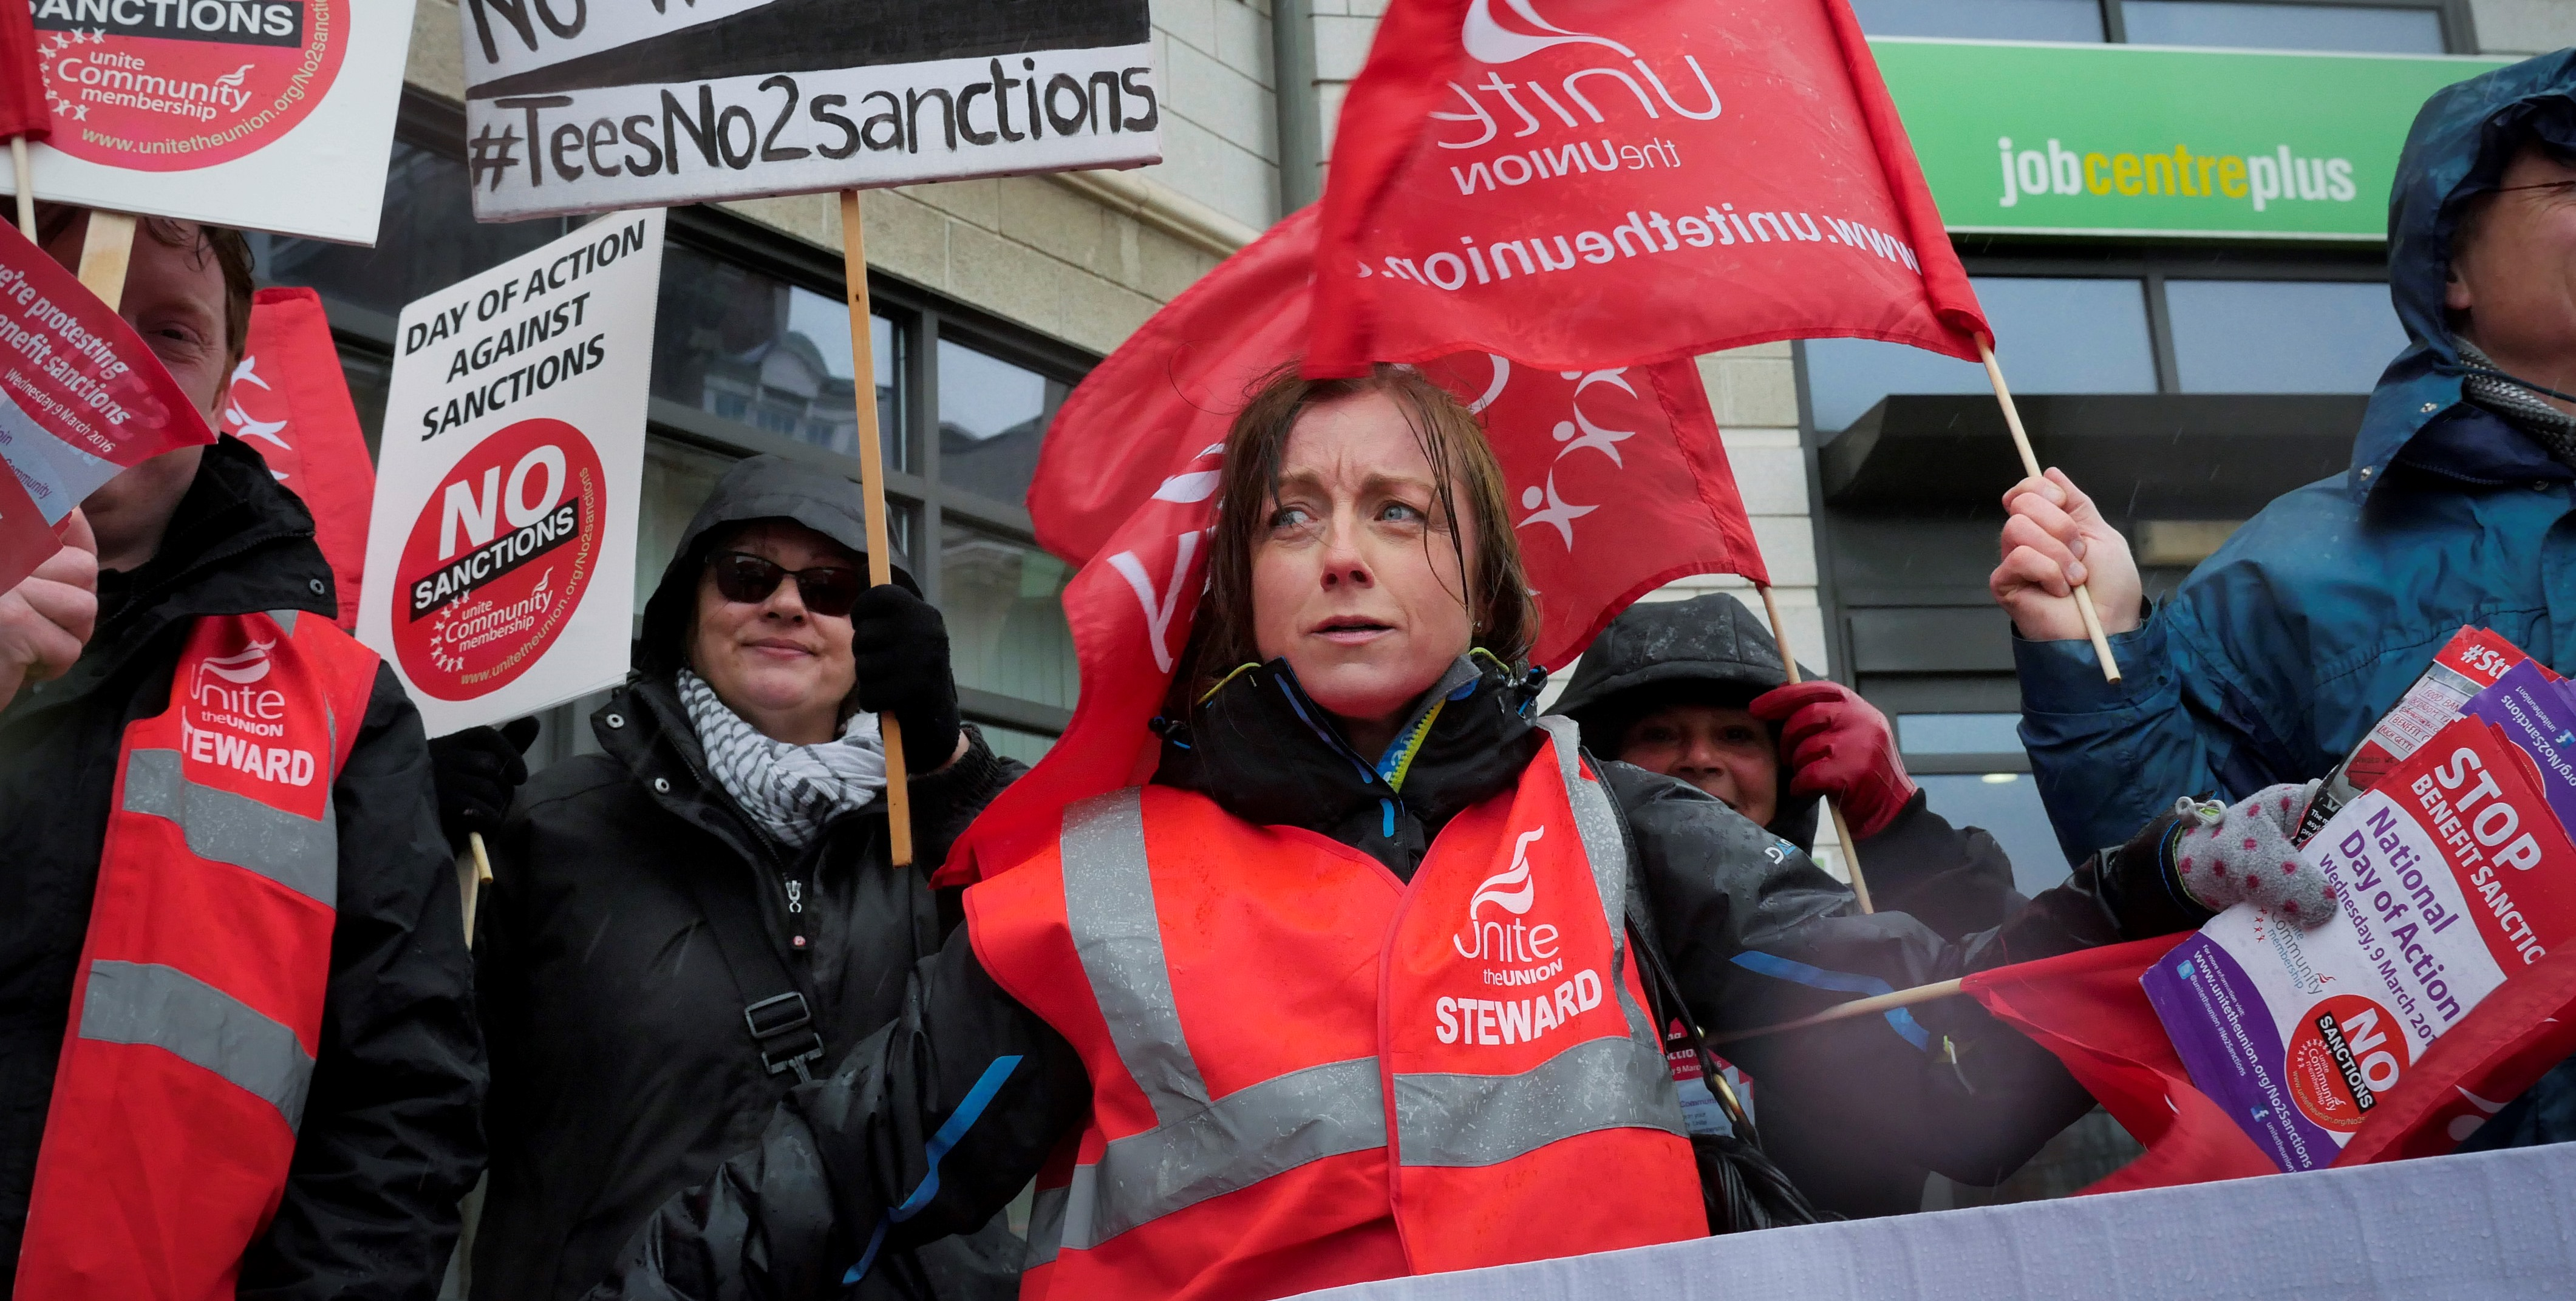 Unite day of action against benefit sanctions. North-east of England activities 9/3 2016 Picket outside Middlesborough Job Centre.  Photo©: Mark Pinder/Meta-4 +44 (0)7768 211174 (mobile) +44 (0)808 189 3443 (free) pictures@meta4photos.com www.meta4photos.com